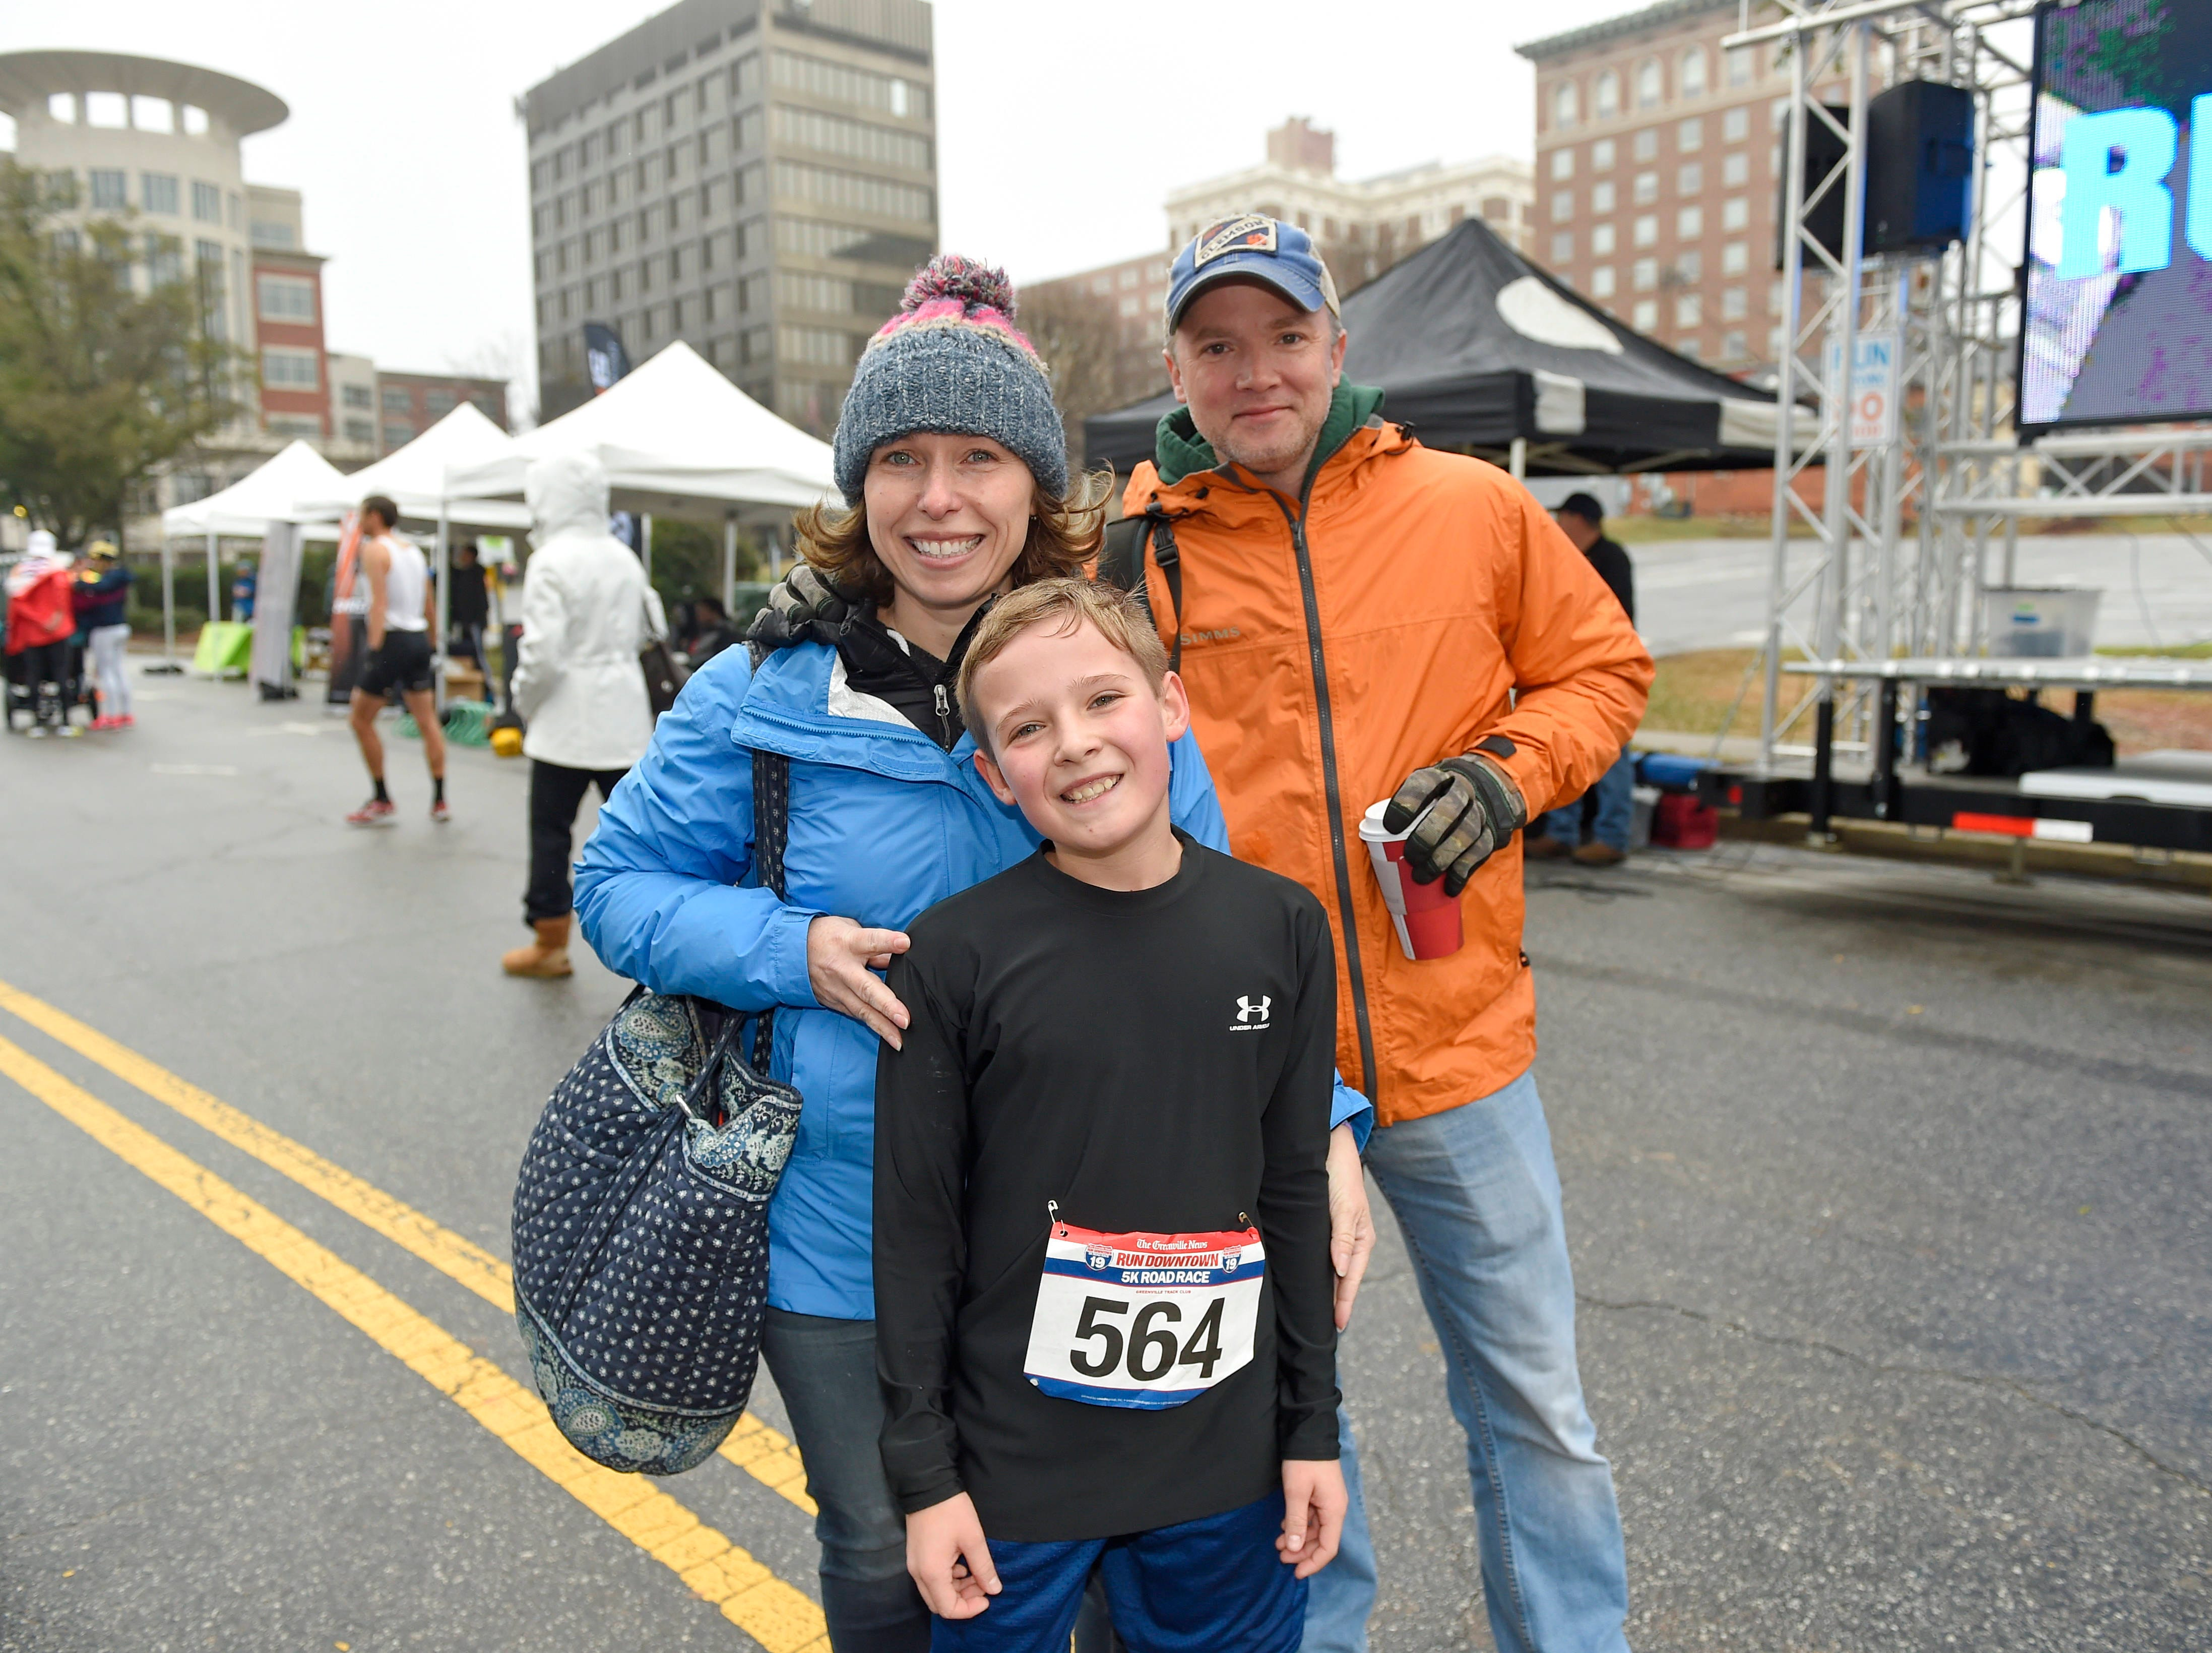 The annual Greenville News Run Downtown 5K was held Saturday, Jan. 19, 2019.